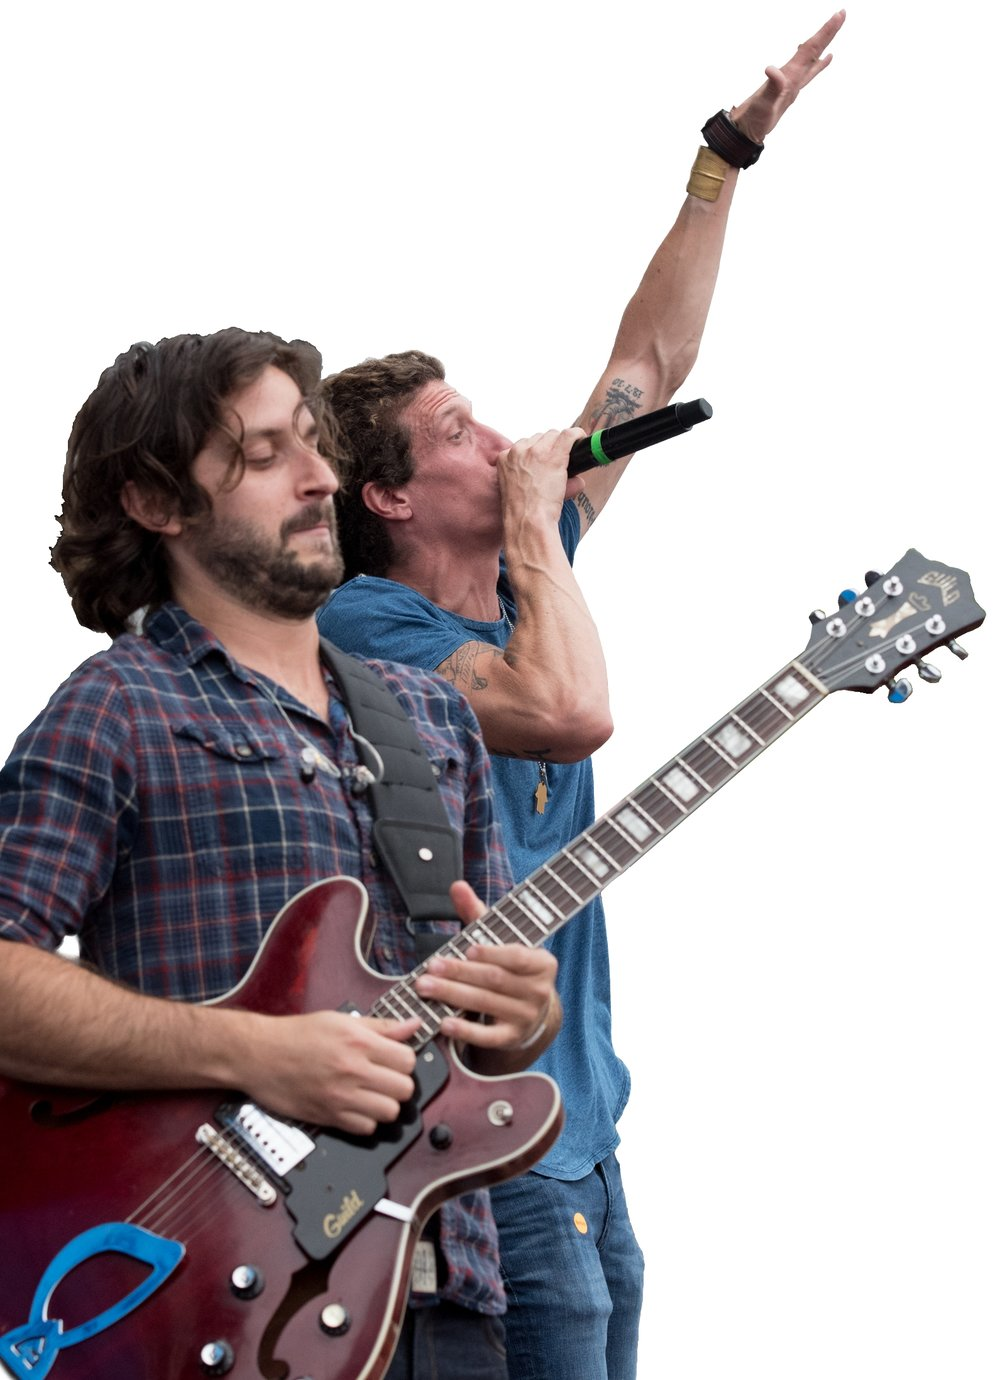 Zack Feinberg and David Shaw of The Revivalists © 2016 Lynda Shenkman Curtis